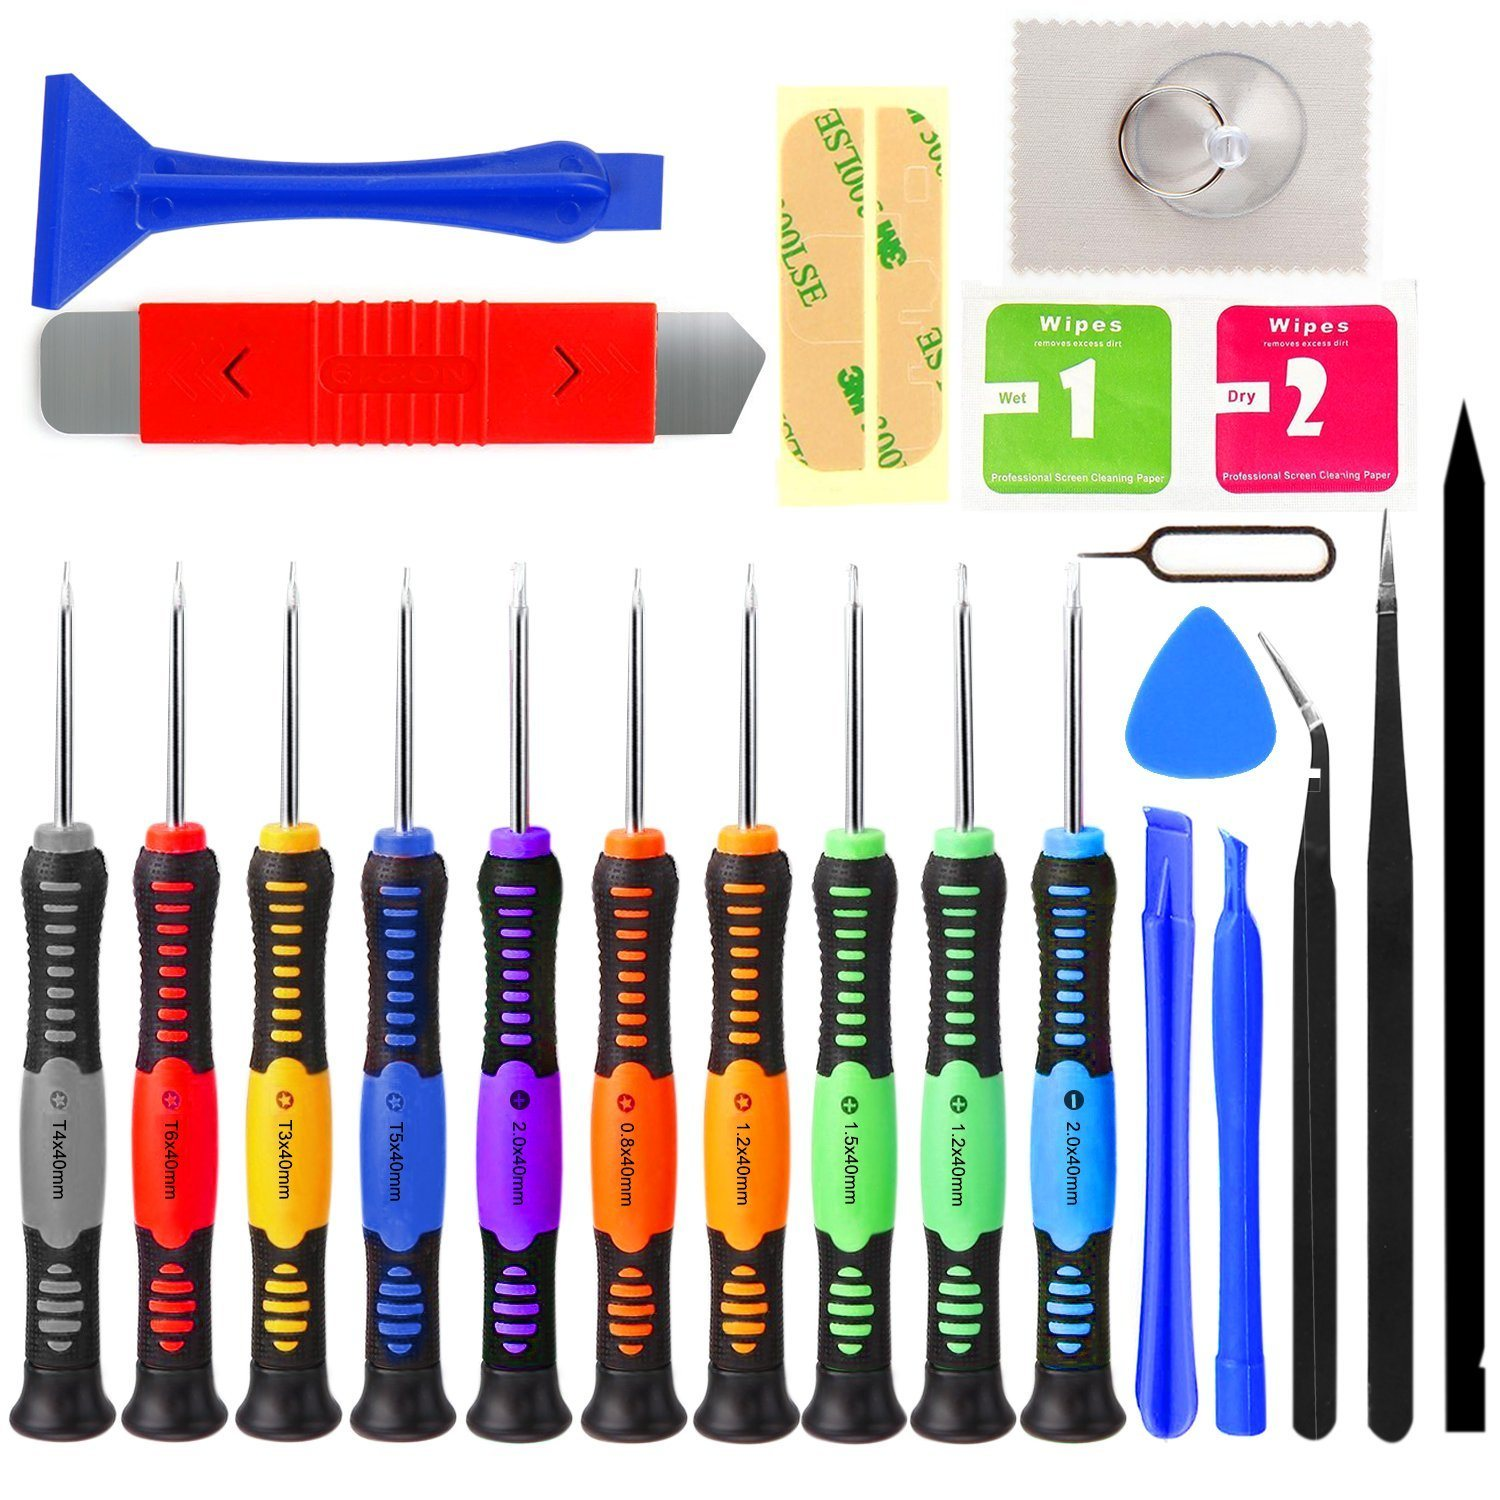 Professional Multi-Function Screwdriver Set Repair Kit Opening Tools